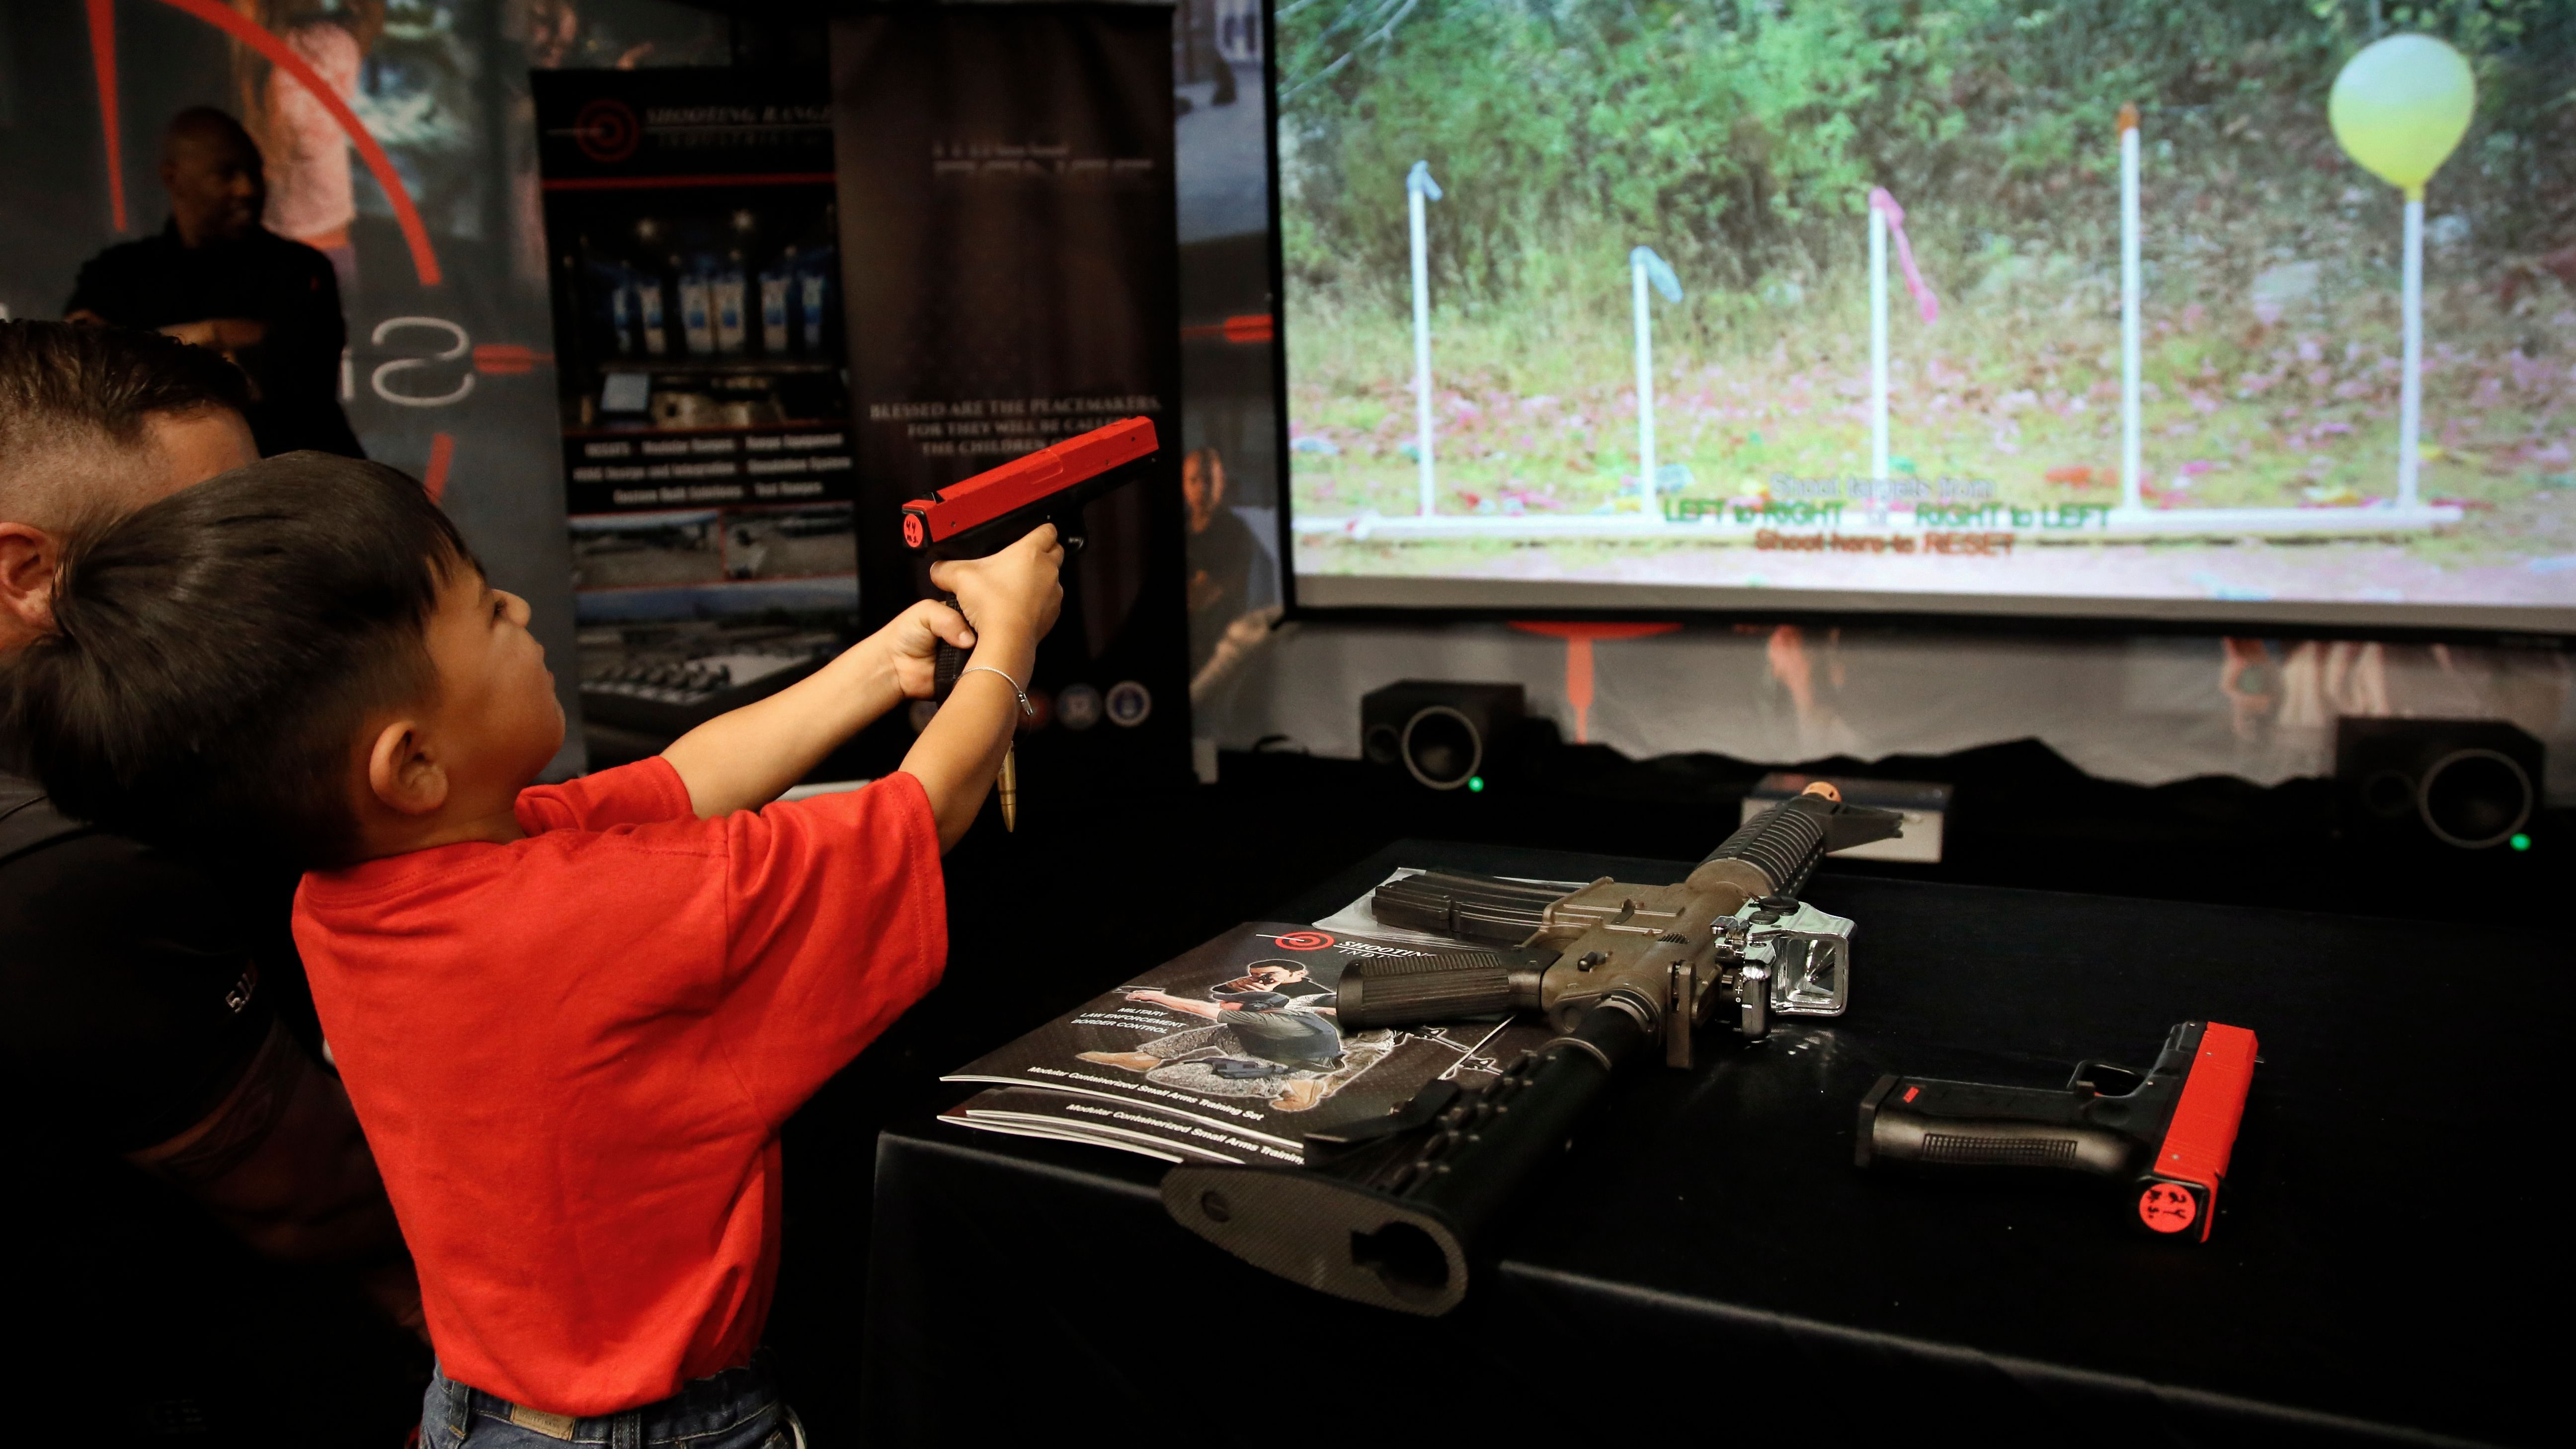 Ryland Hodge, 4, of Lakeland, Fla., aims at a balloons on a video display on an electronic gun range in the exhibit hall at the National Rifle Association convention in Dallas, Friday, May 4, 2018. (AP Photo/Sue Ogrocki)